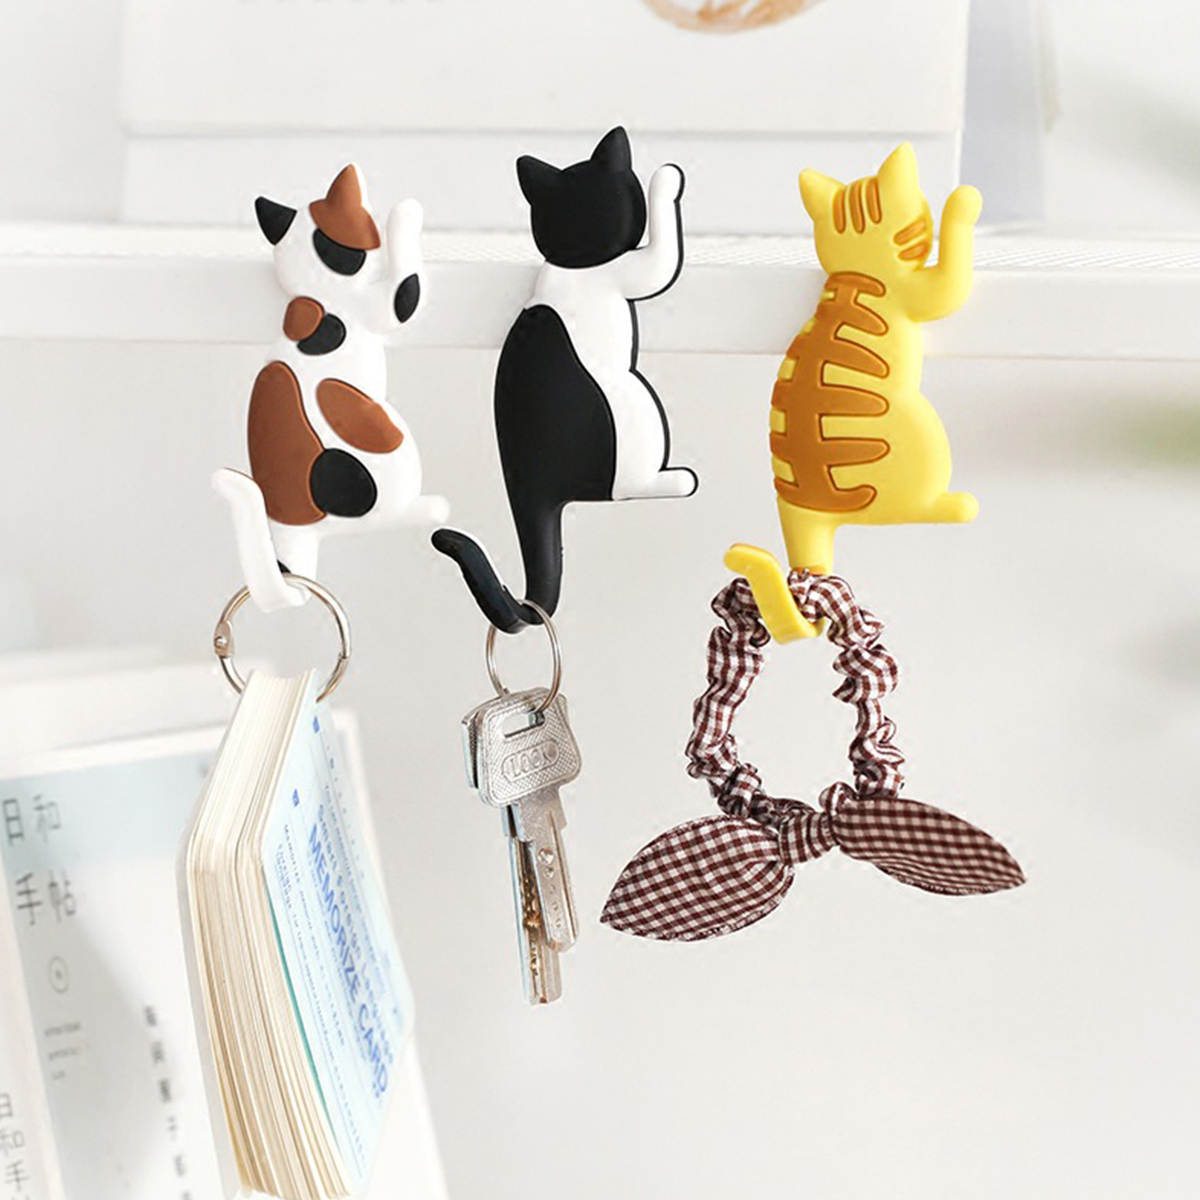 Hanging Door Clothes Towel Handbag Holder Lovely Magnetic Hook Refrigerator Stick Various Shapes Fridge Magnet